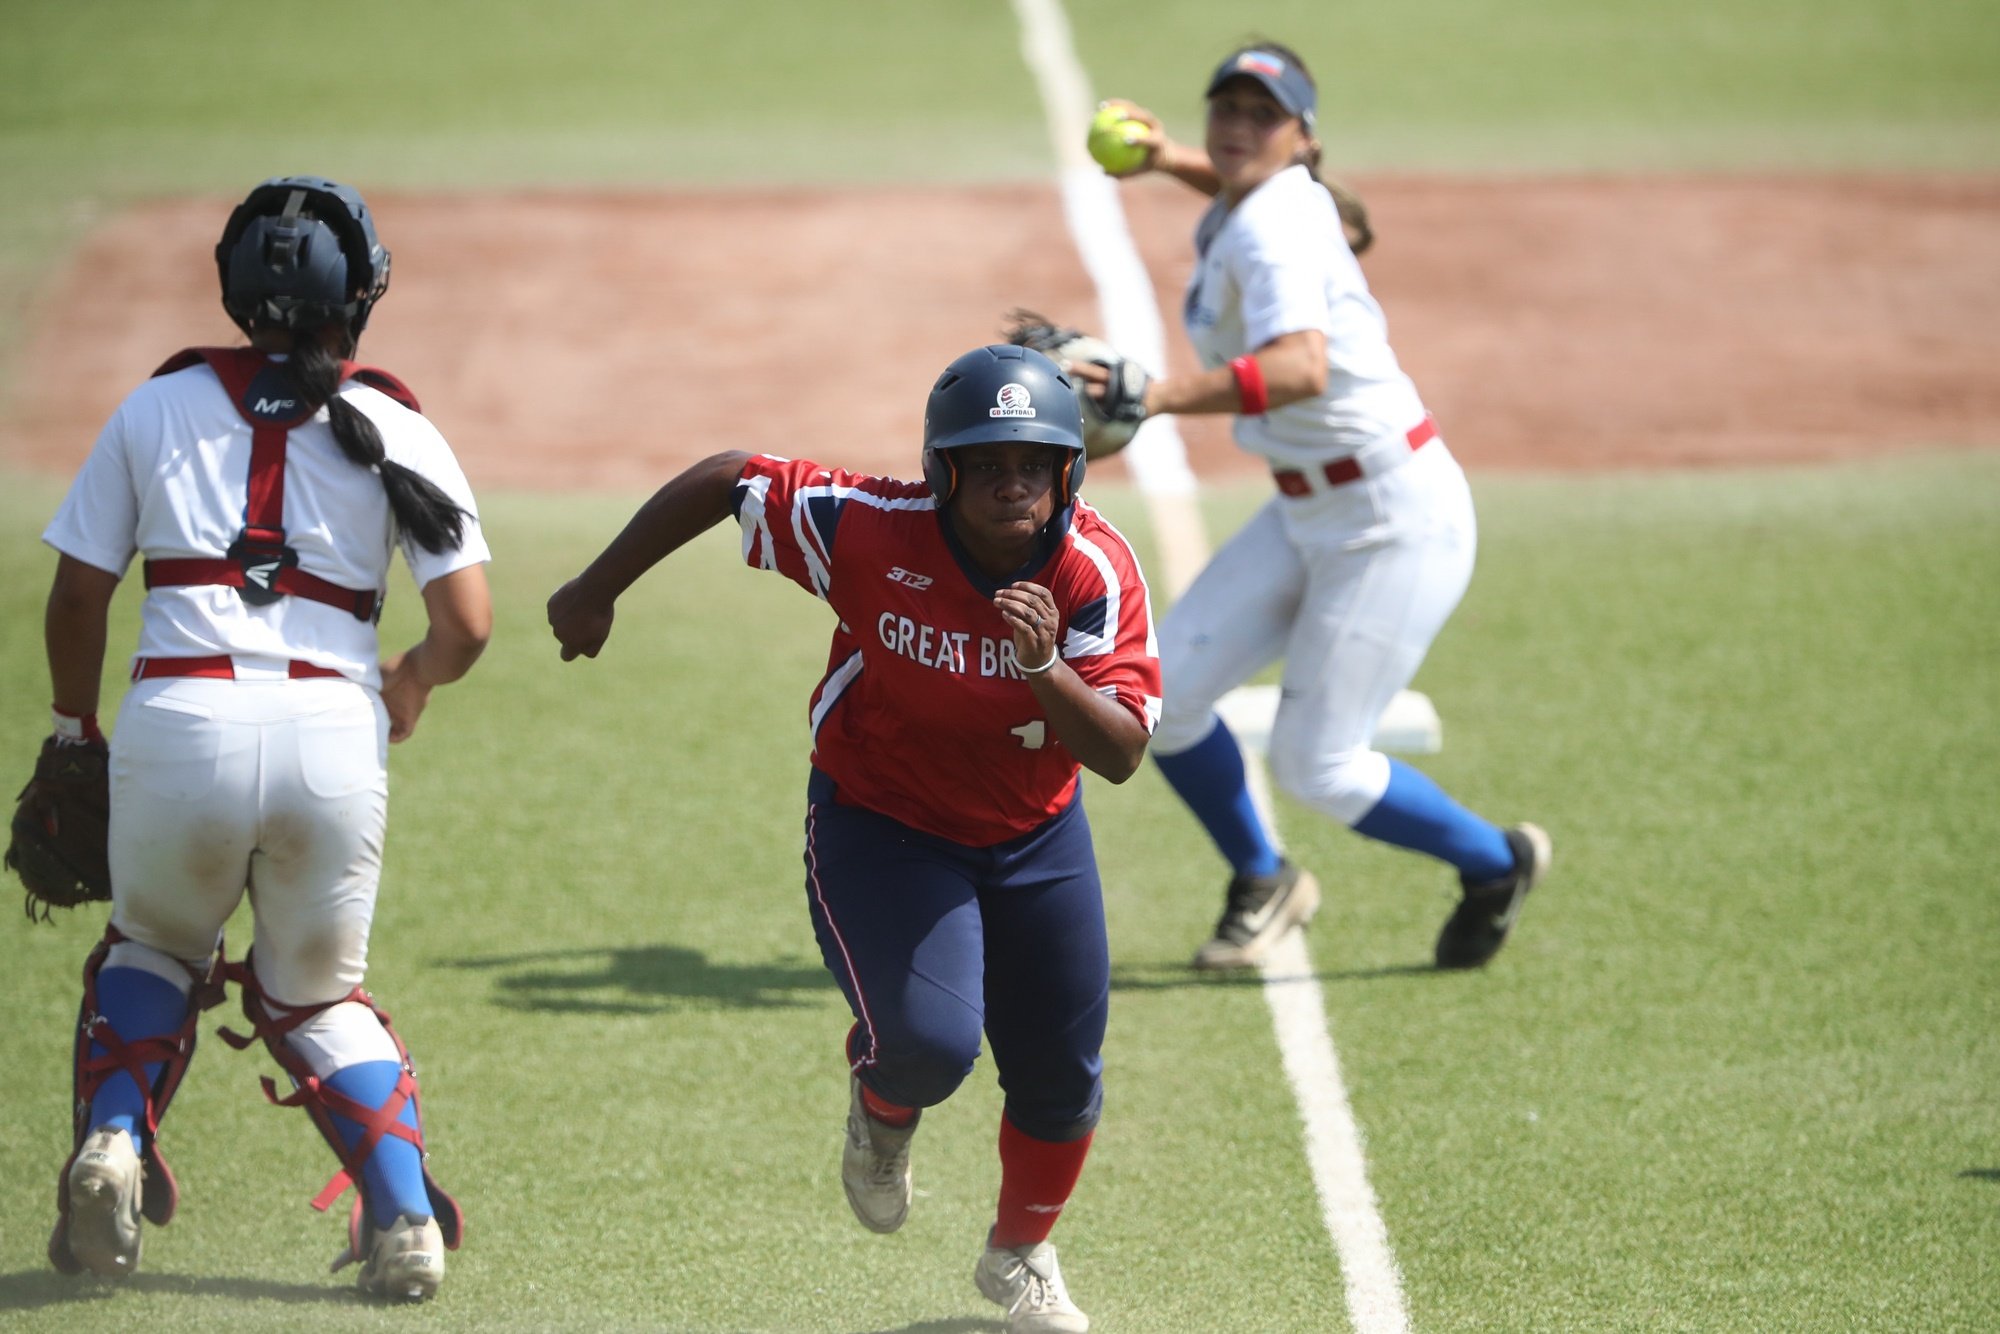 Great Britain scores the go ahead run